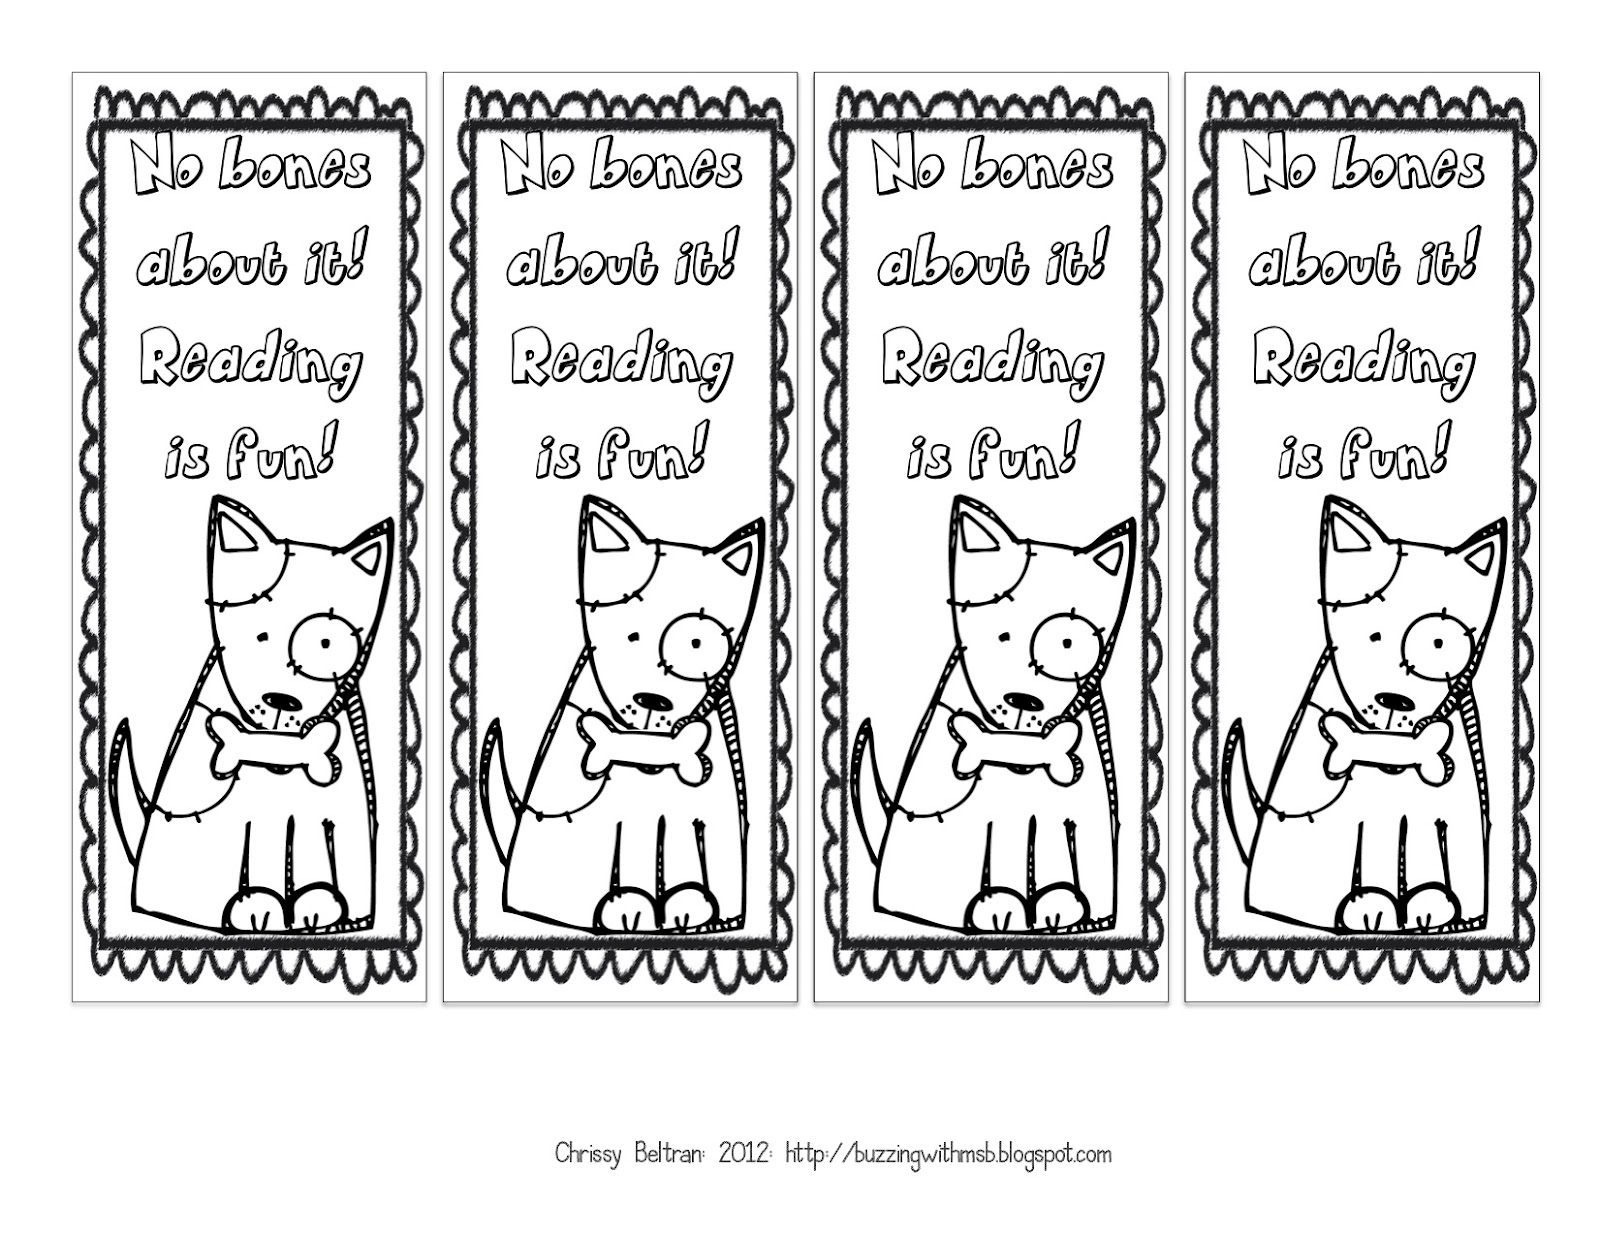 Printable Coloring Bookmarks Free : Free resources printable bookmarks